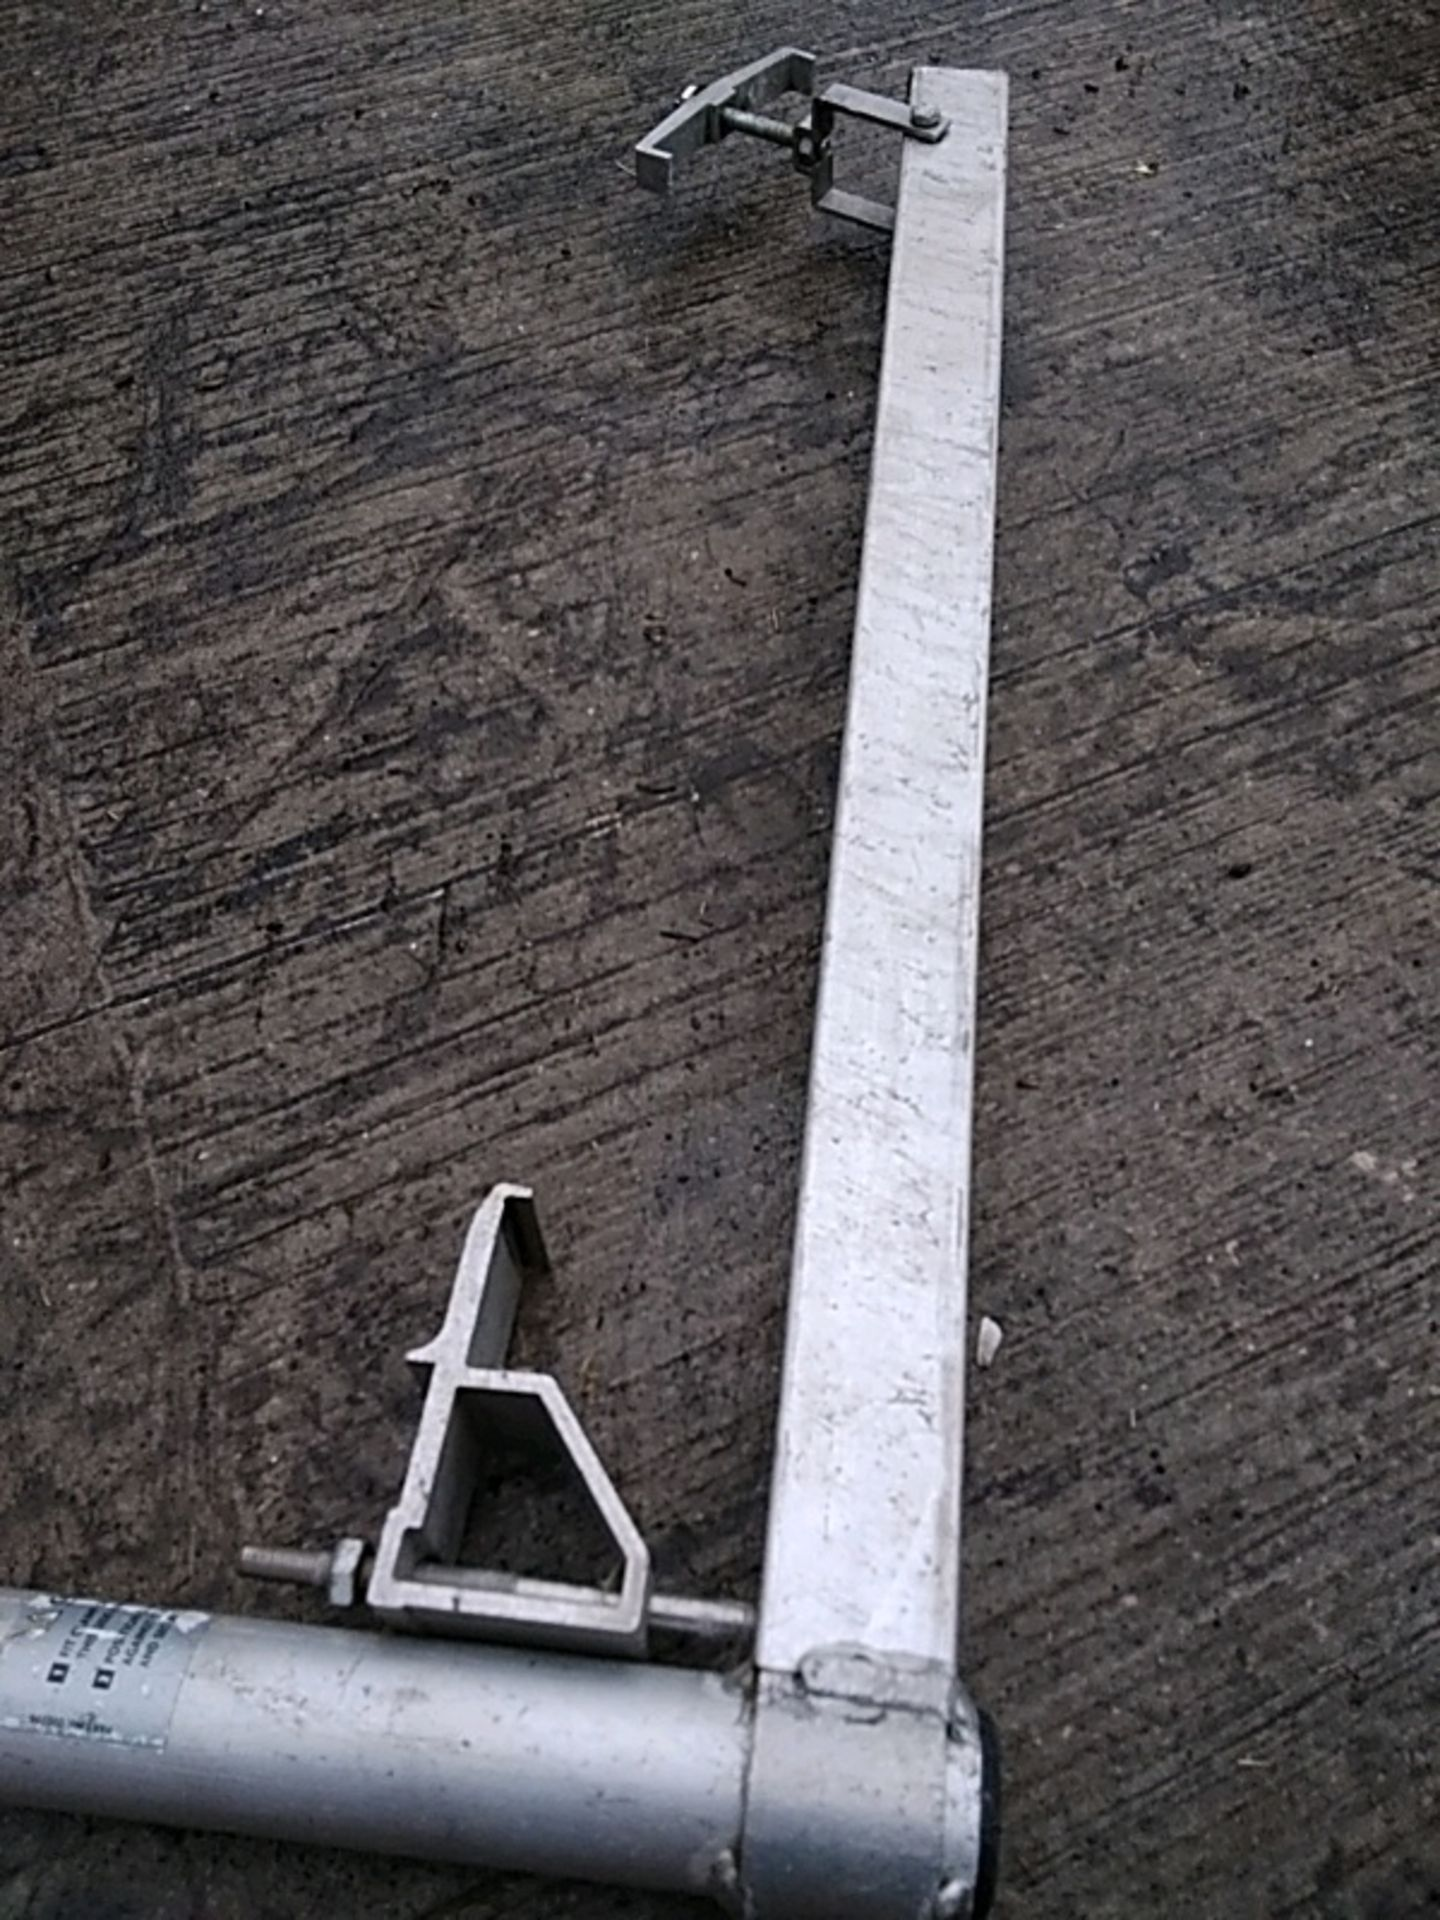 (33) Youngman Superpost Handrail Post for use with Superstars - Image 3 of 4